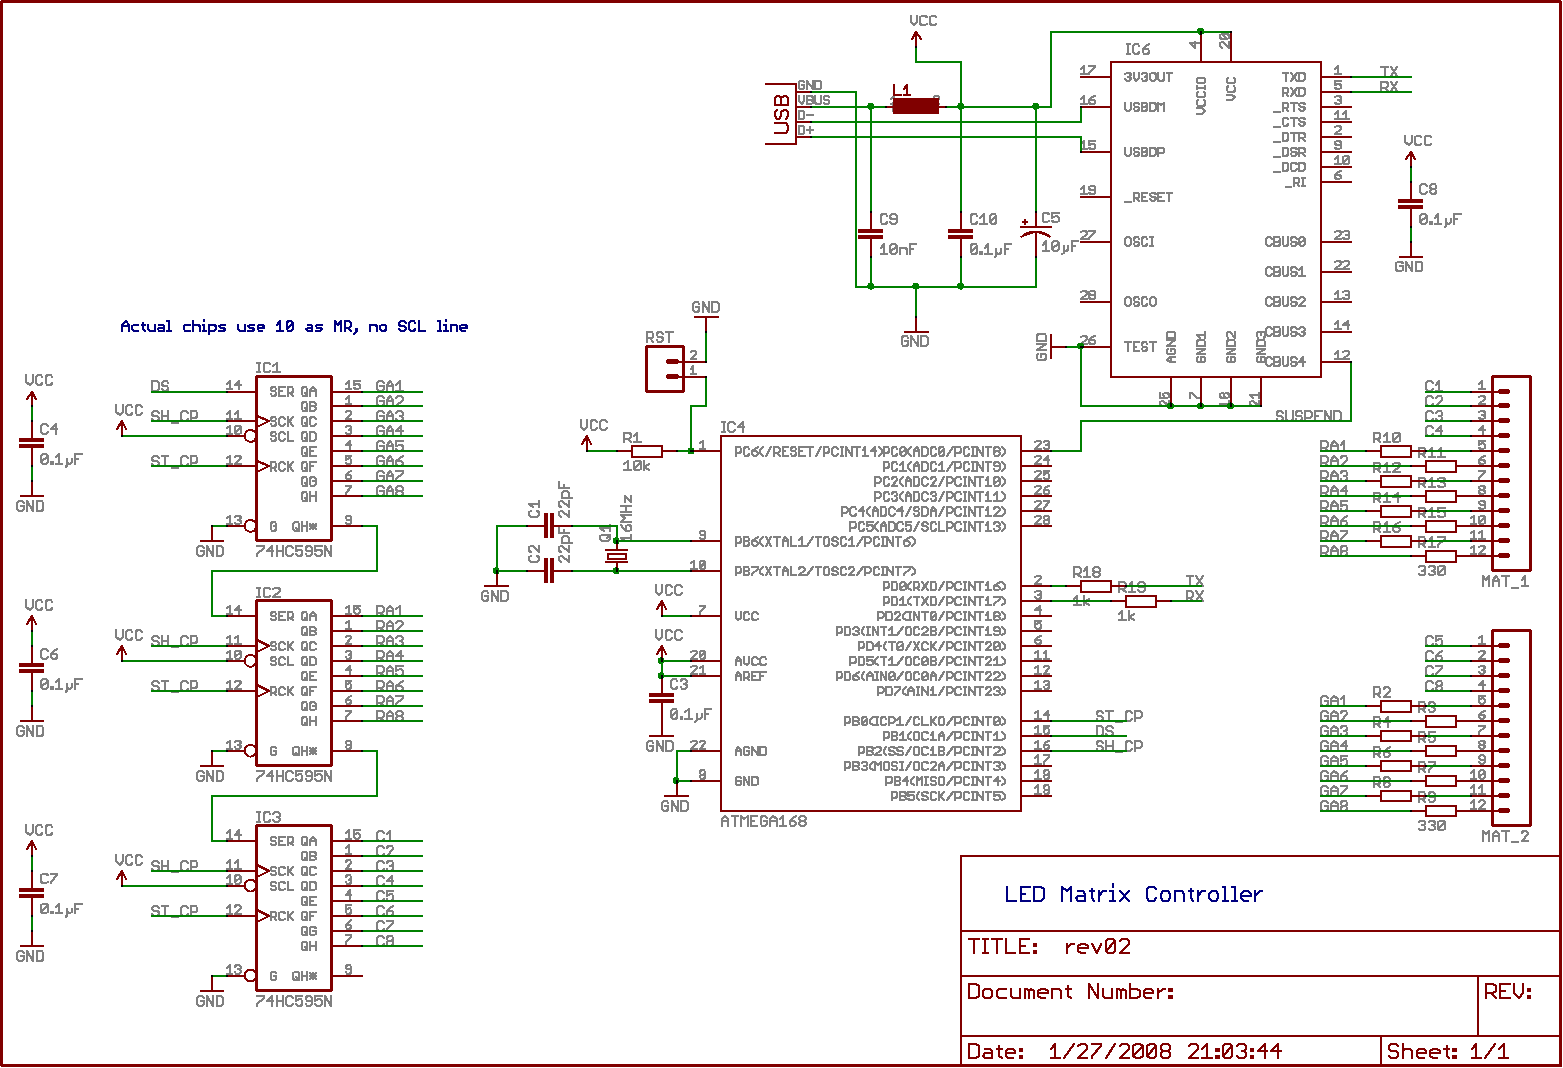 Lovely Eagle Schematic To Board Photos - The Best Electrical Circuit ...